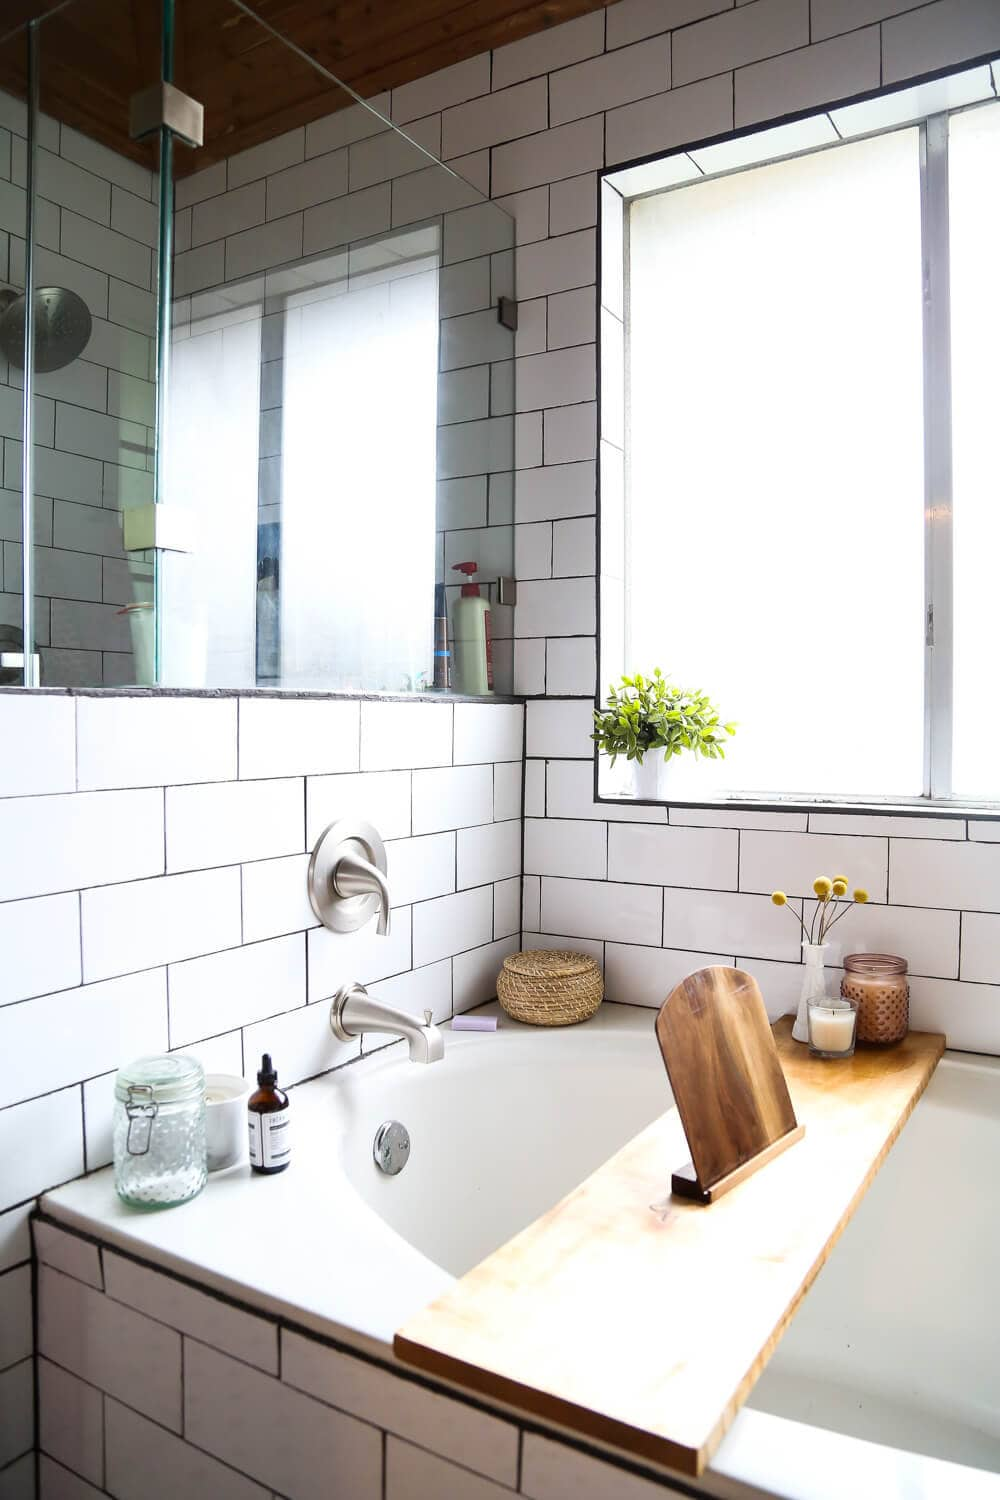 How to remodel a bathroom - ideas for a bathroom remodel with white subway tile, a large shower, and cedar planked ceiling